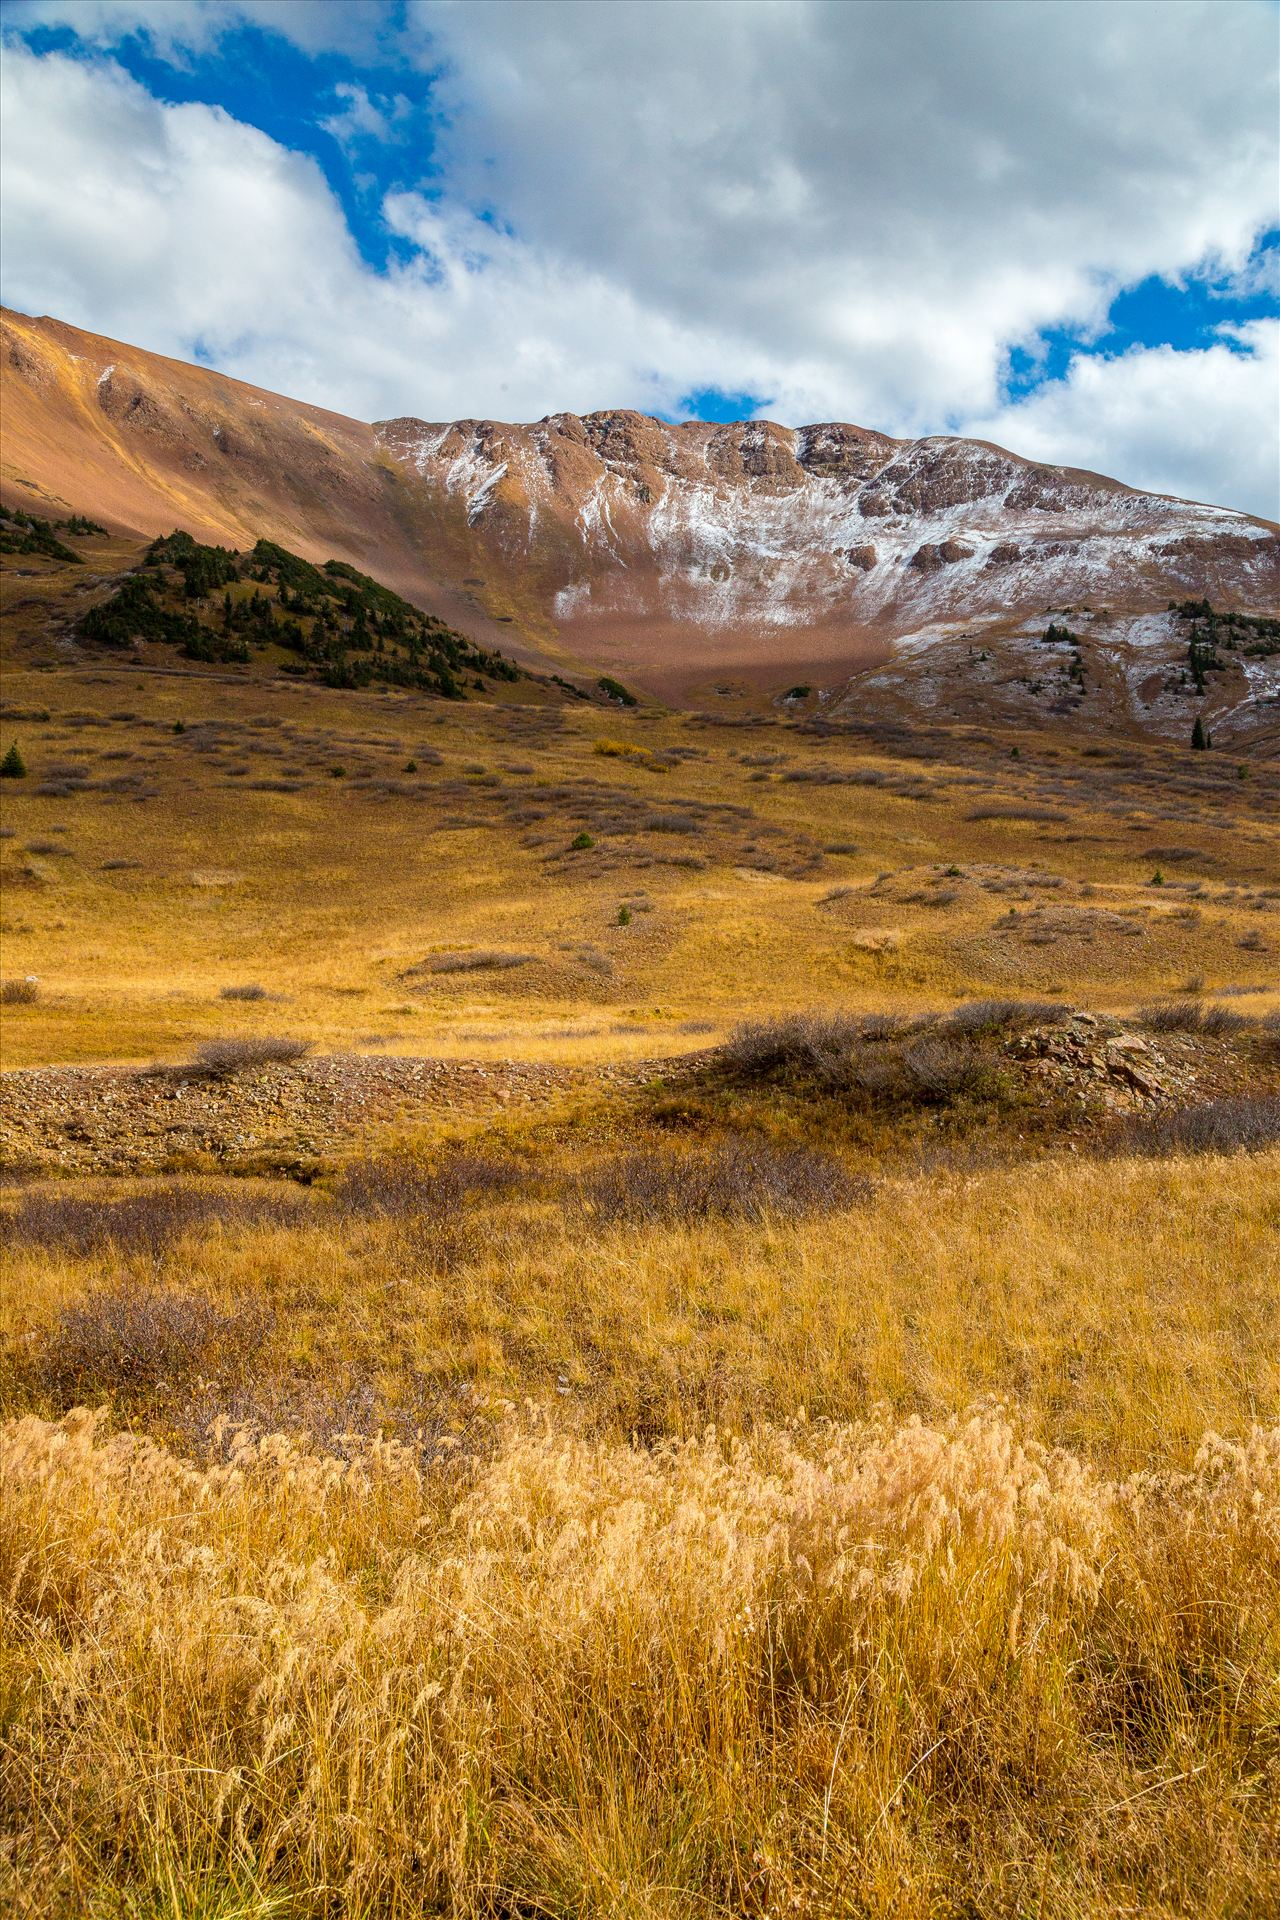 Snow and Grasses at Mount Baldy Wilderness - Snow and fall grasses on the peaks at the Mount Baldy Wilderness area, near the summit. Taken from Schofield Pass in Crested Butte, Colorado. by D Scott Smith